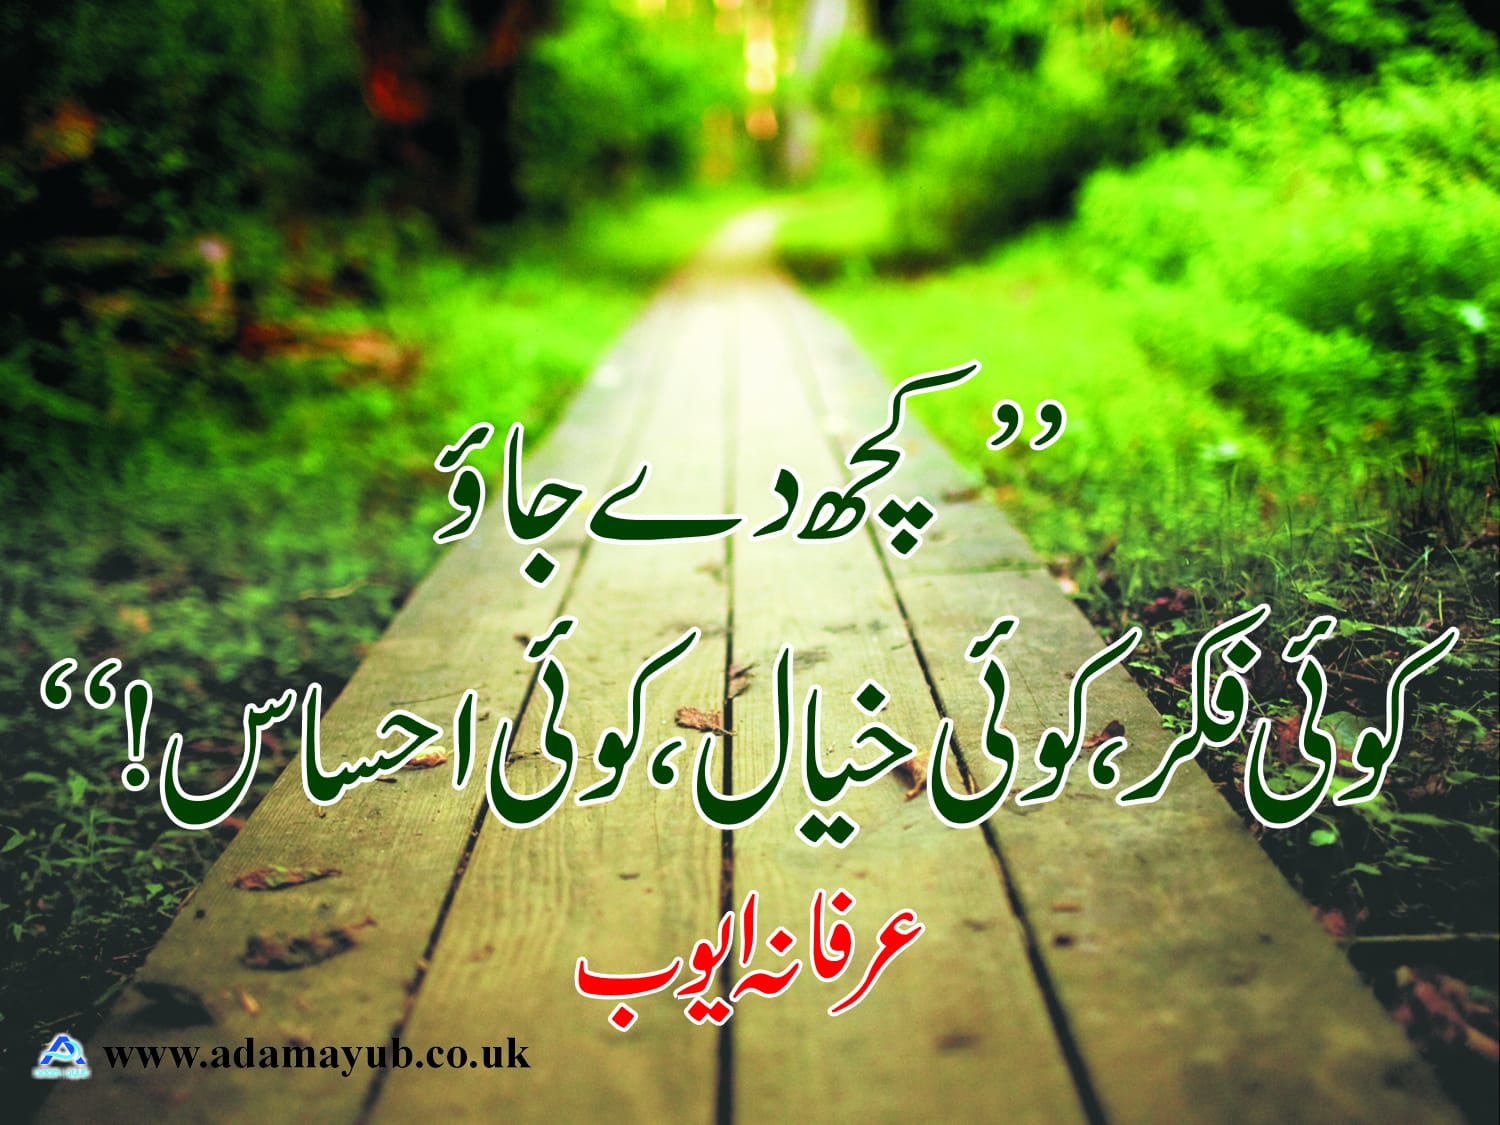 khuch day jaoo 3